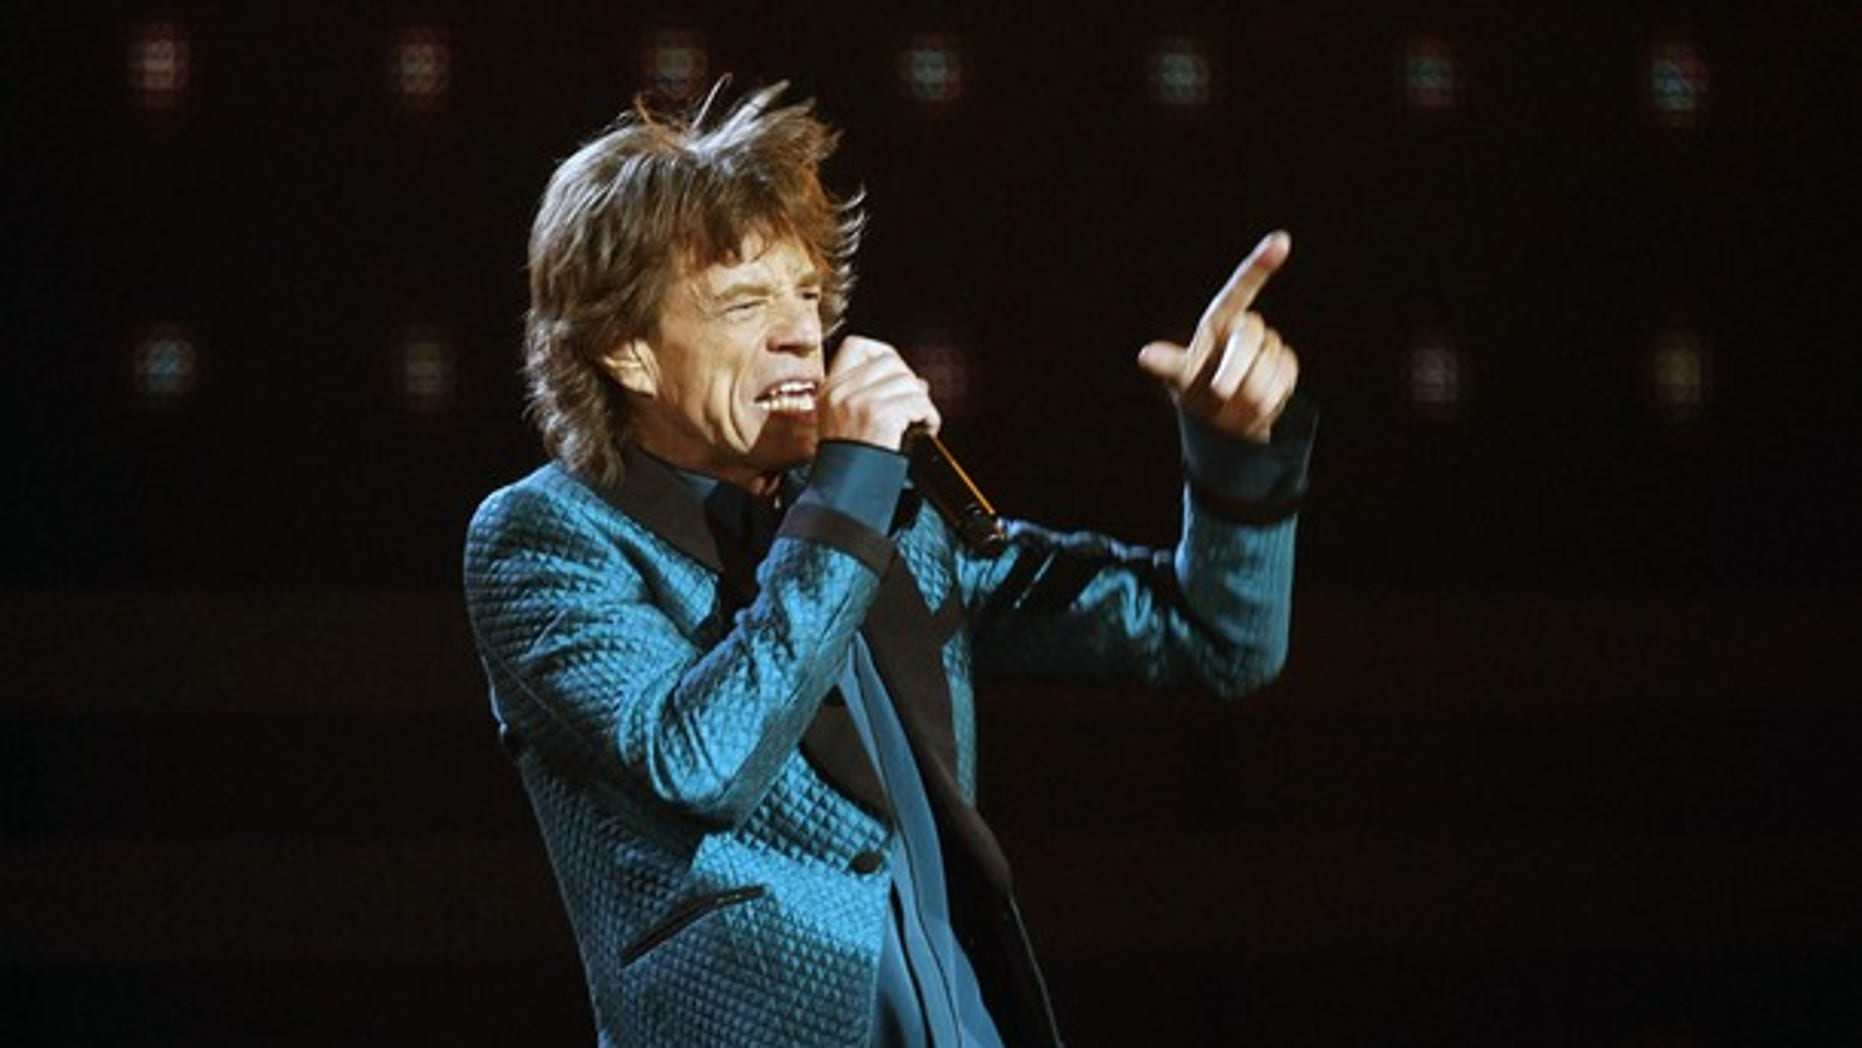 """Mick Jagger performs """"Everybody Needs Someone to Love"""" at the 53rd annual Grammy Awards in Los Angeles, California February 13, 2011."""